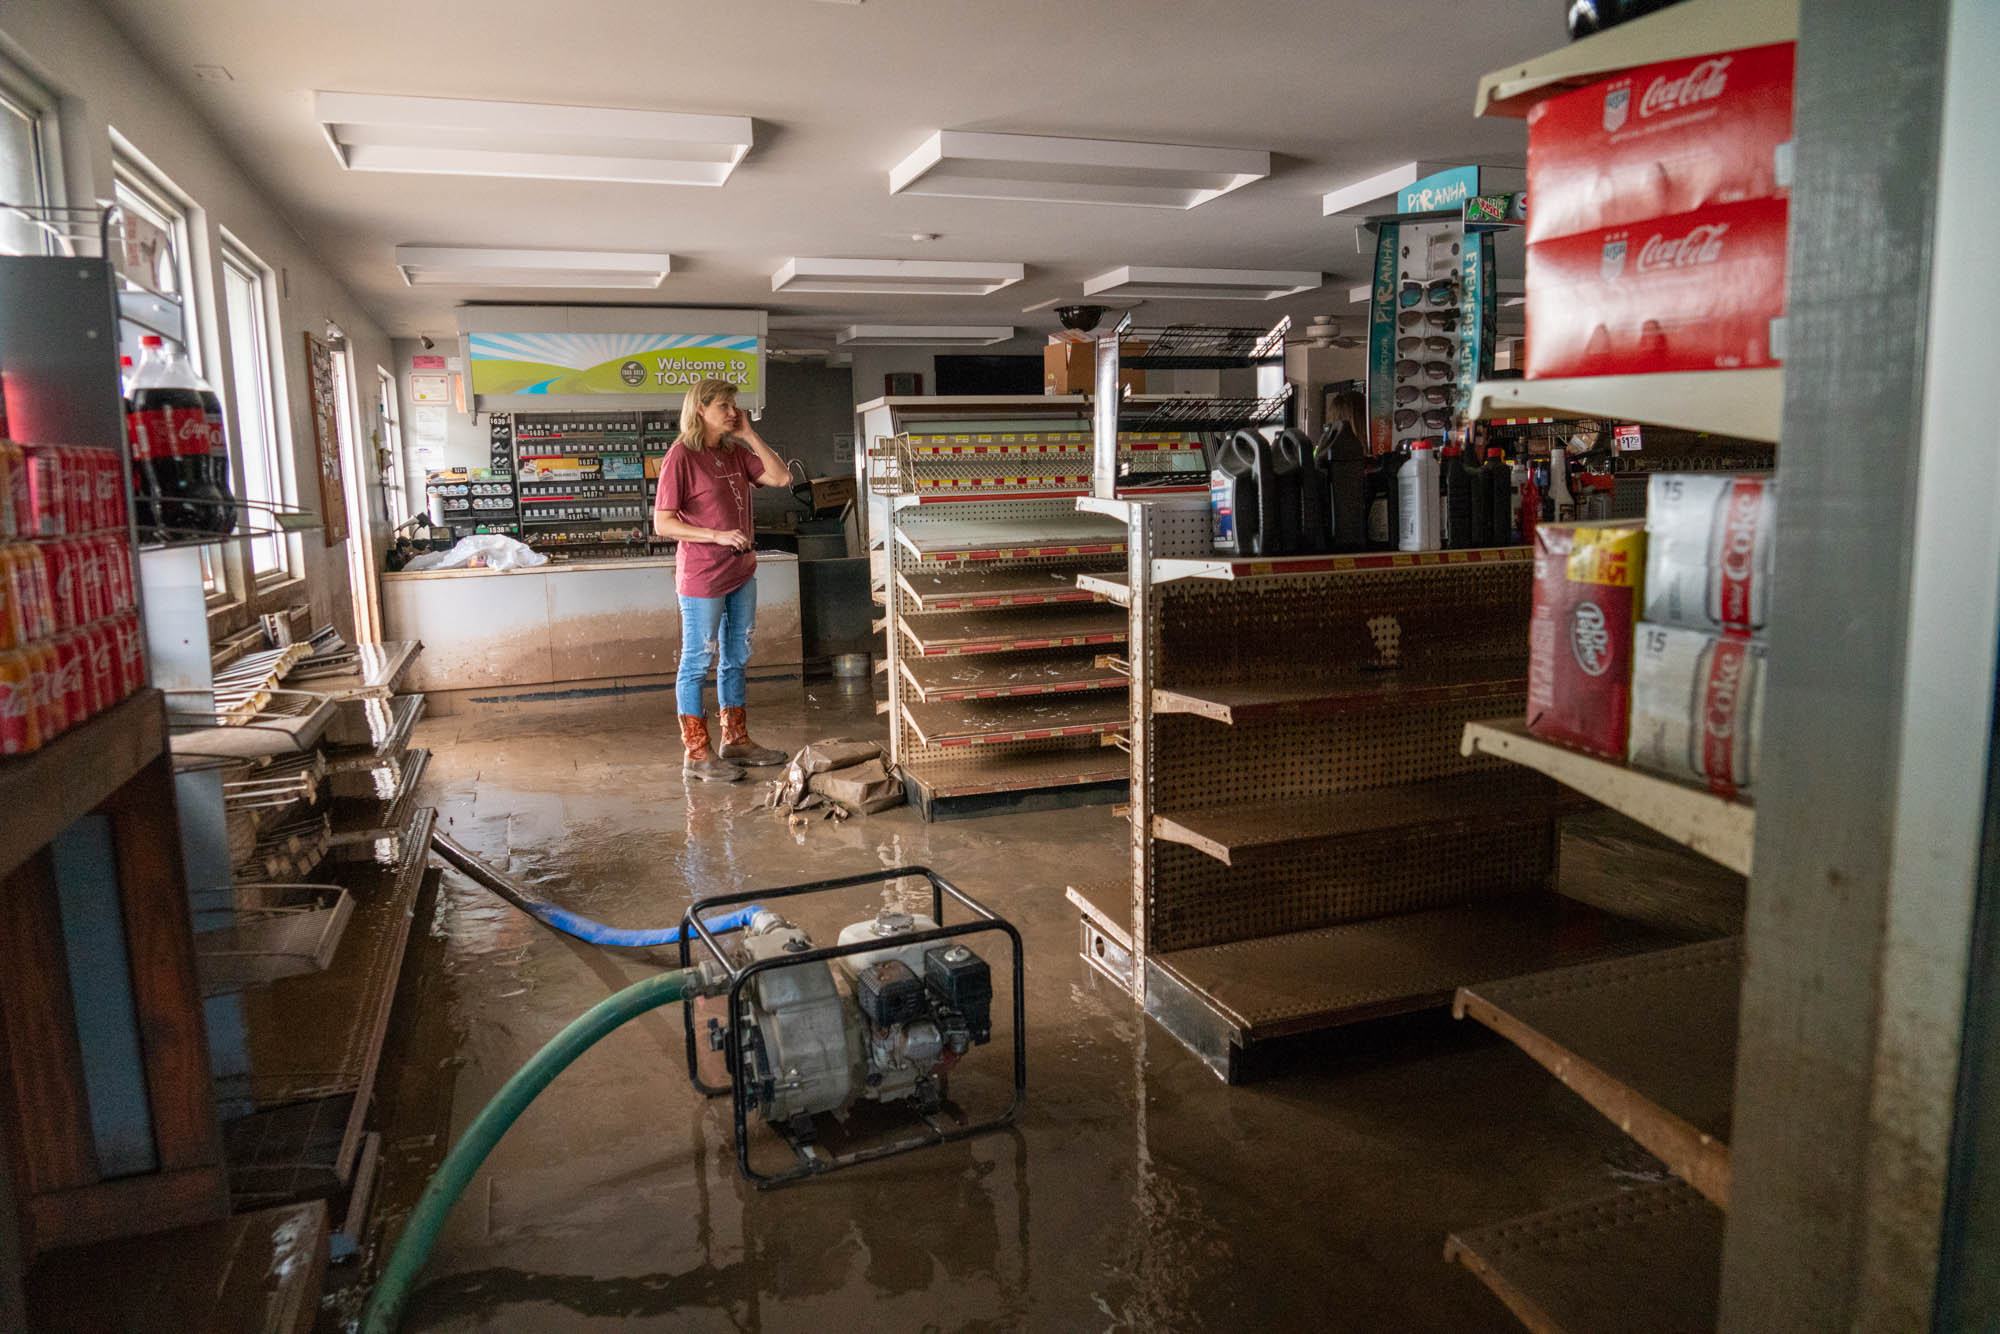 The Arkansas River overflowed its banks this year, though Jason and Christy Trantina, owners of the Toad Suck One-Stop, tried in vain to stop the deluge with concrete blocks. (Jordan Laird/News21)